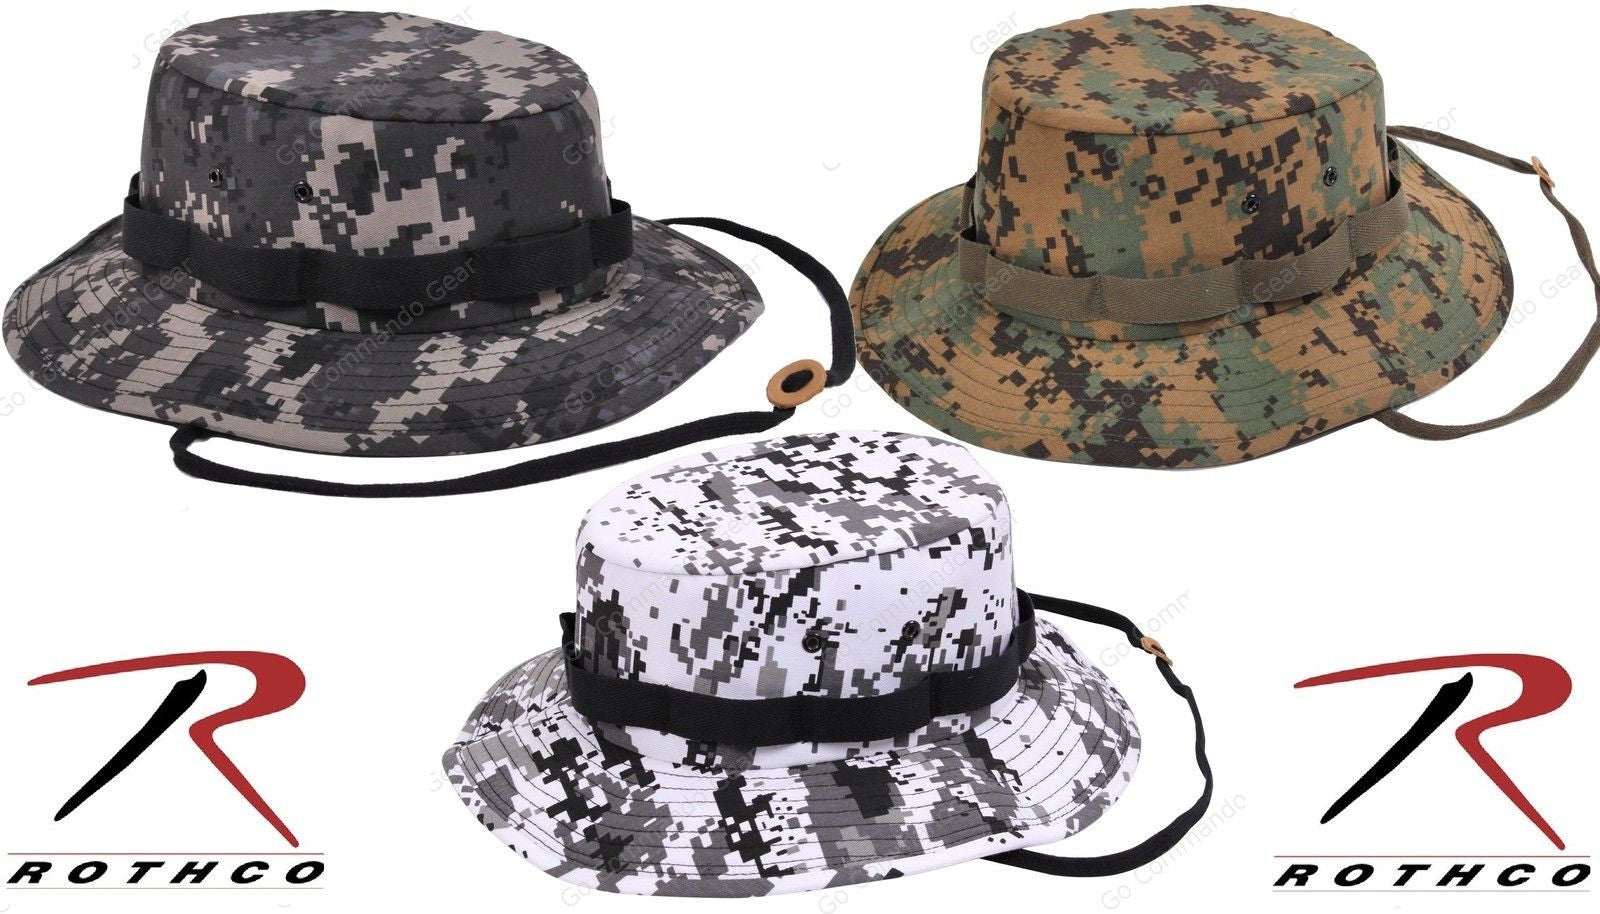 ce8af84e88dd1 Digital Camouflage Jungle Boonie Hat - Rothco Mens Camo Chin Strap Bucket  Hats Woodland ...